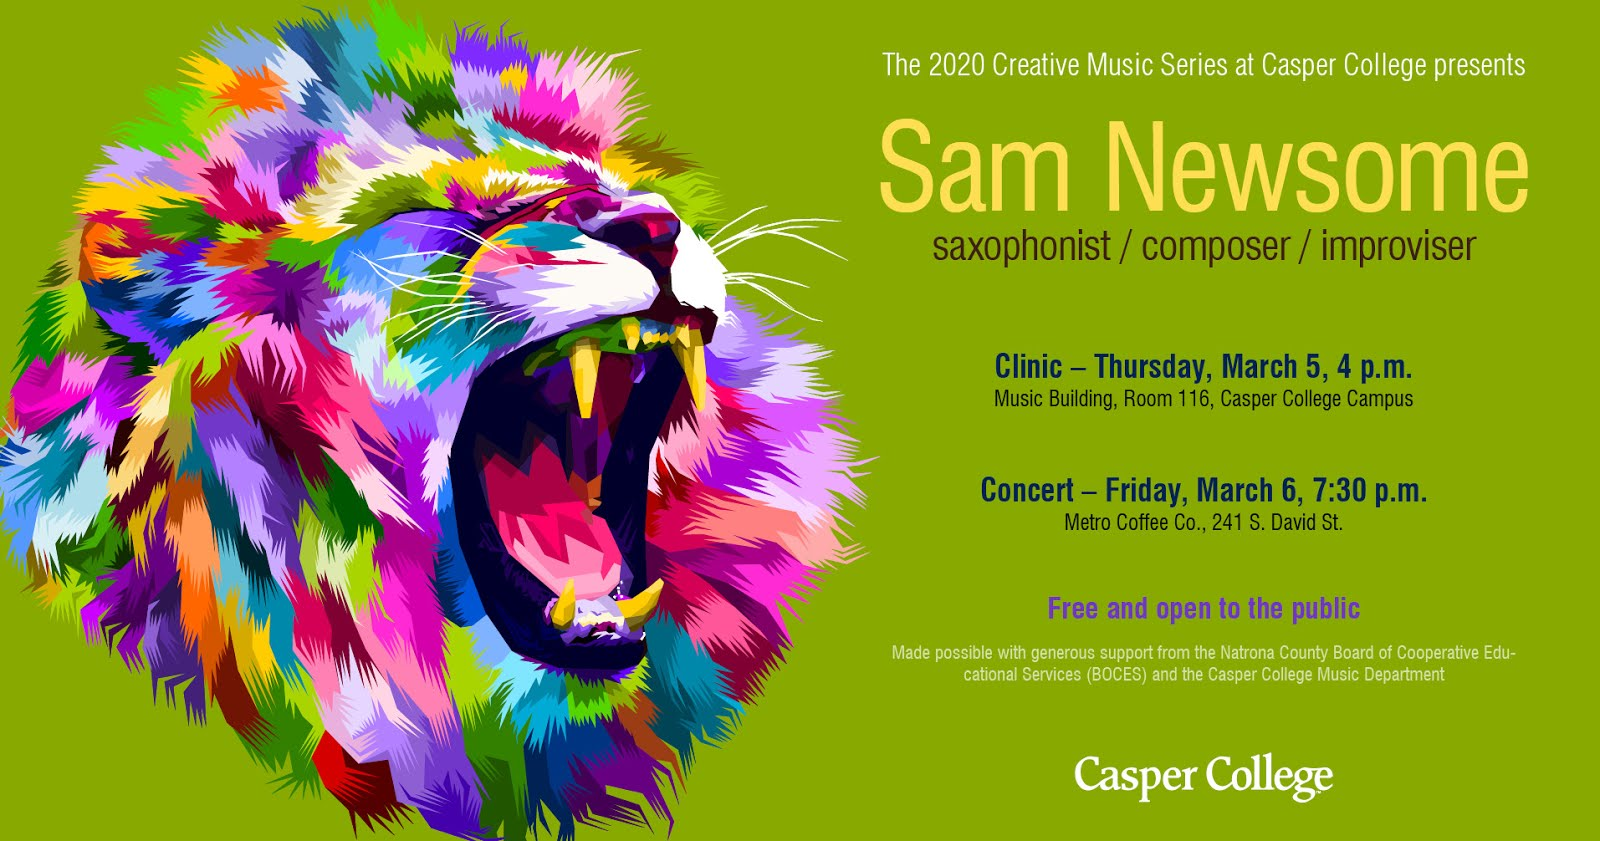 Casper College Creative Music Series